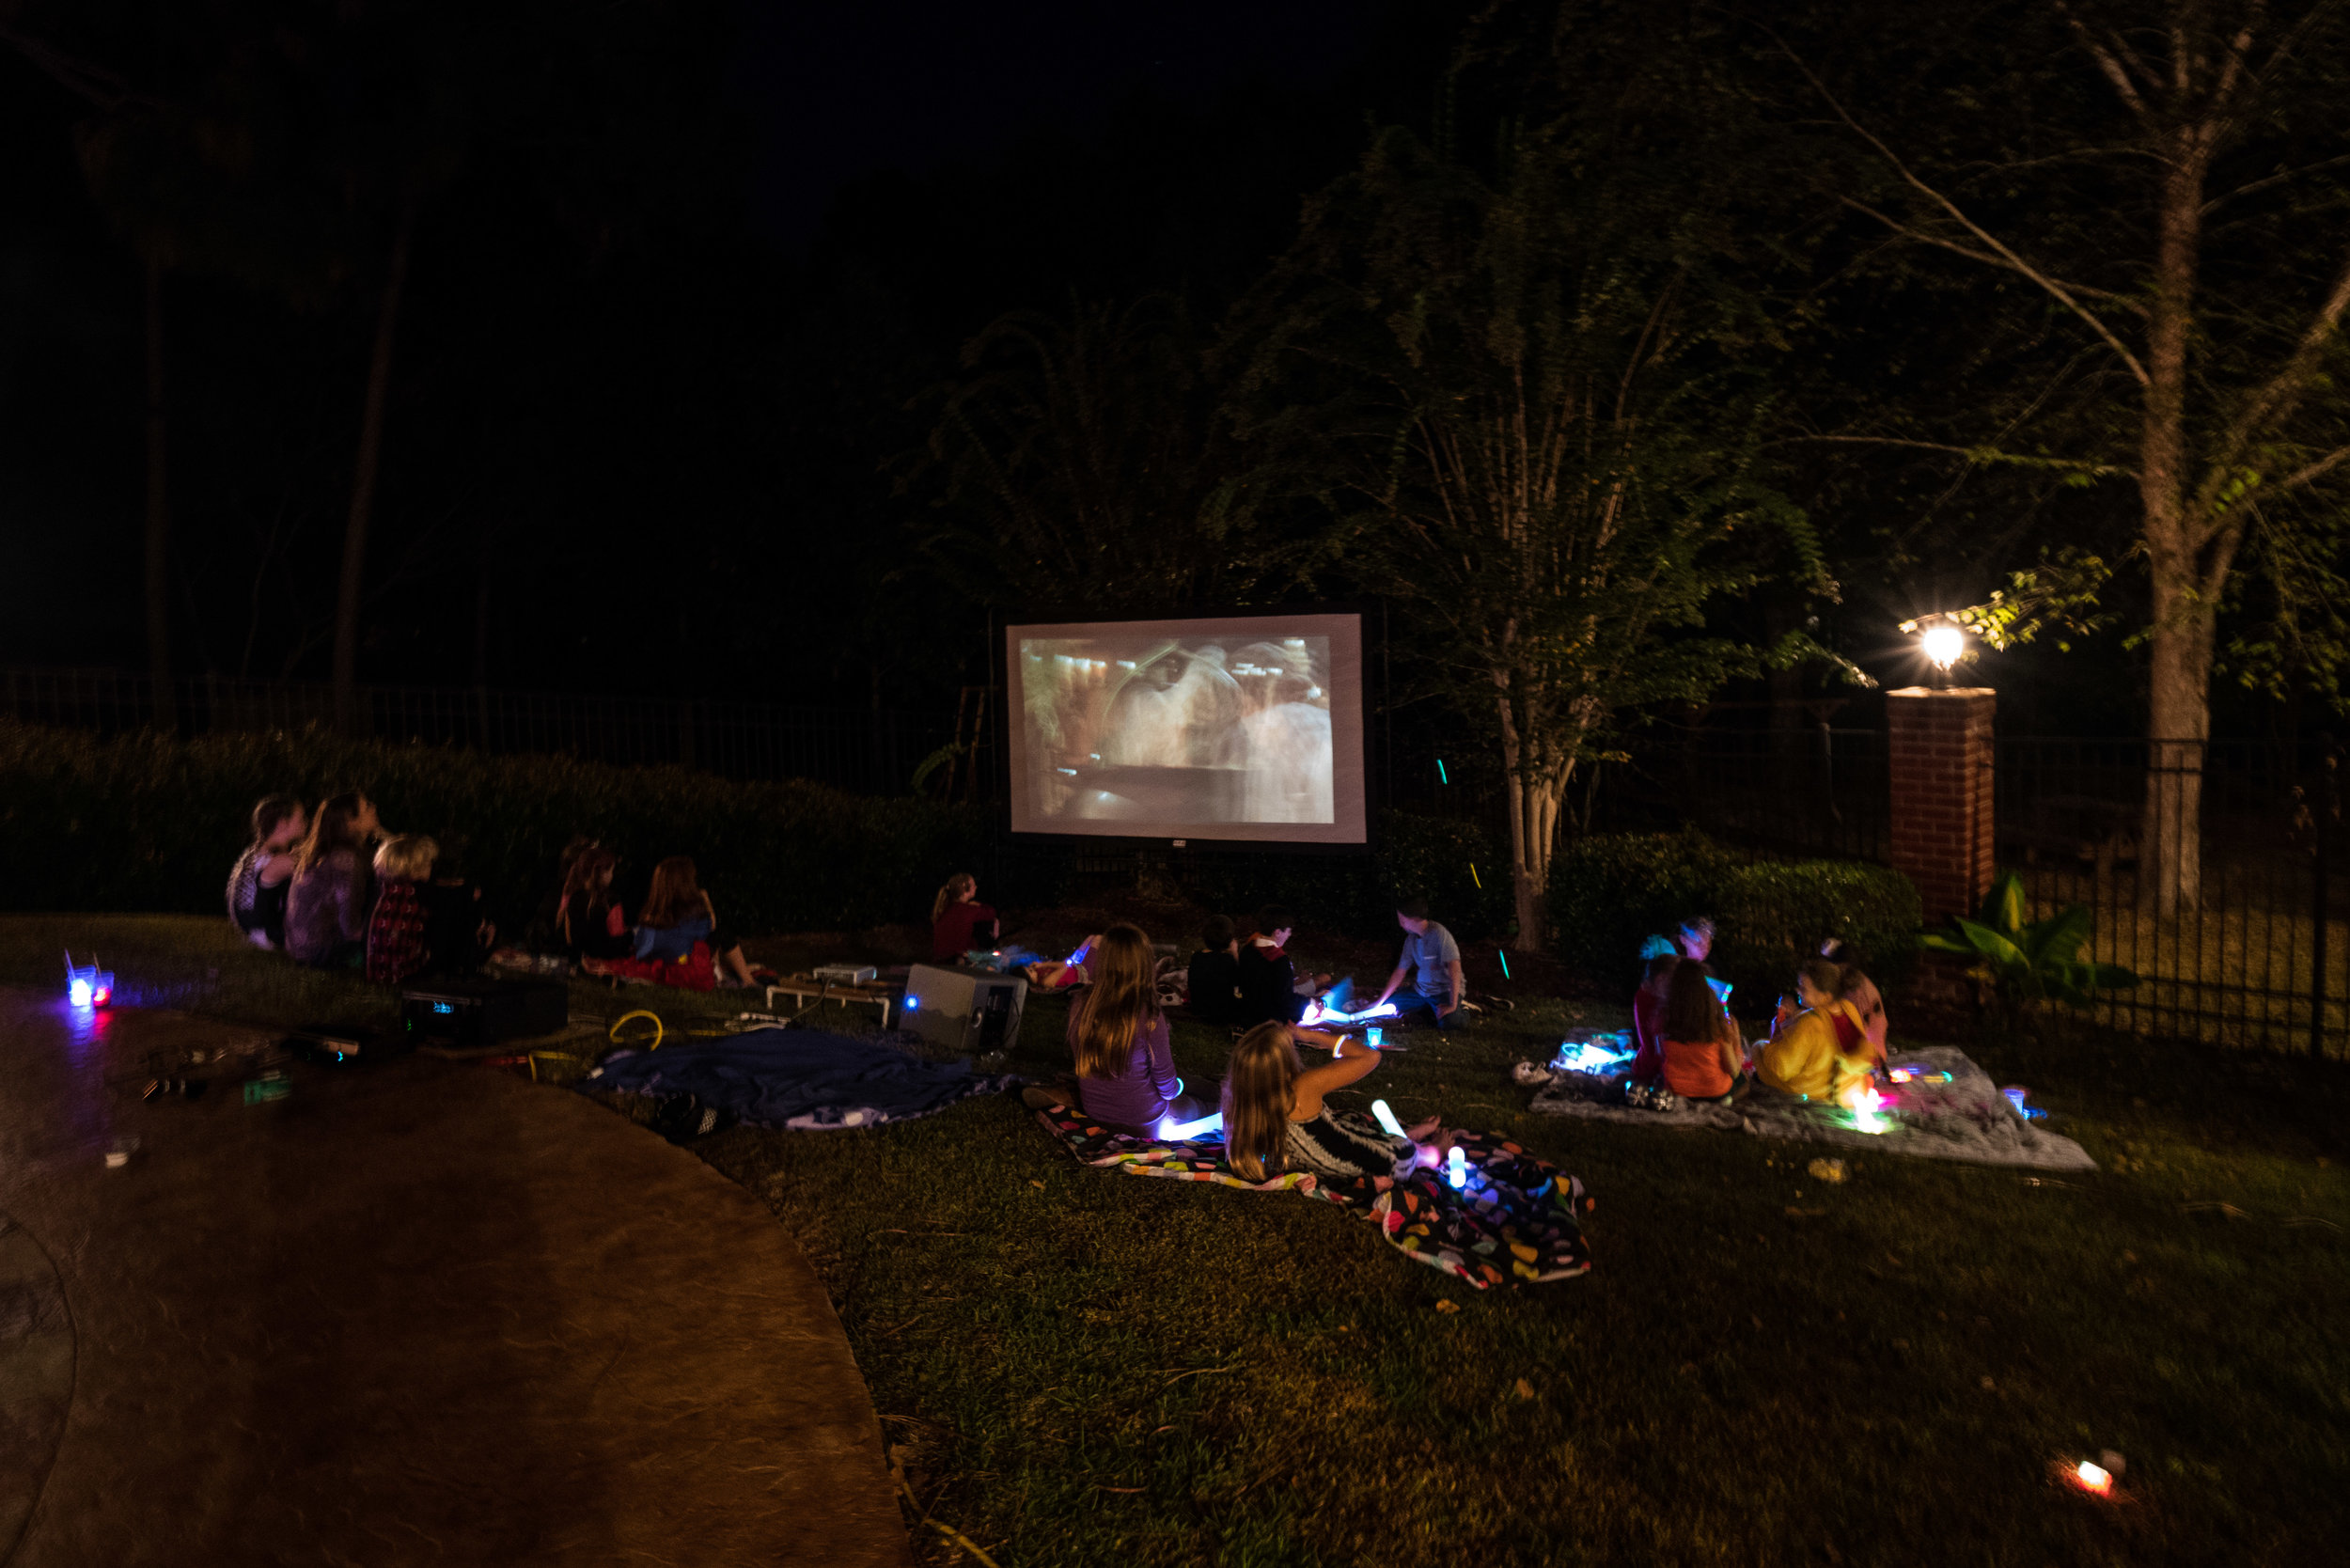 We watched Hocus Pocus on the outdoor screen. There is something just fun and magical about outdoor movies in the cooler fall evenings!